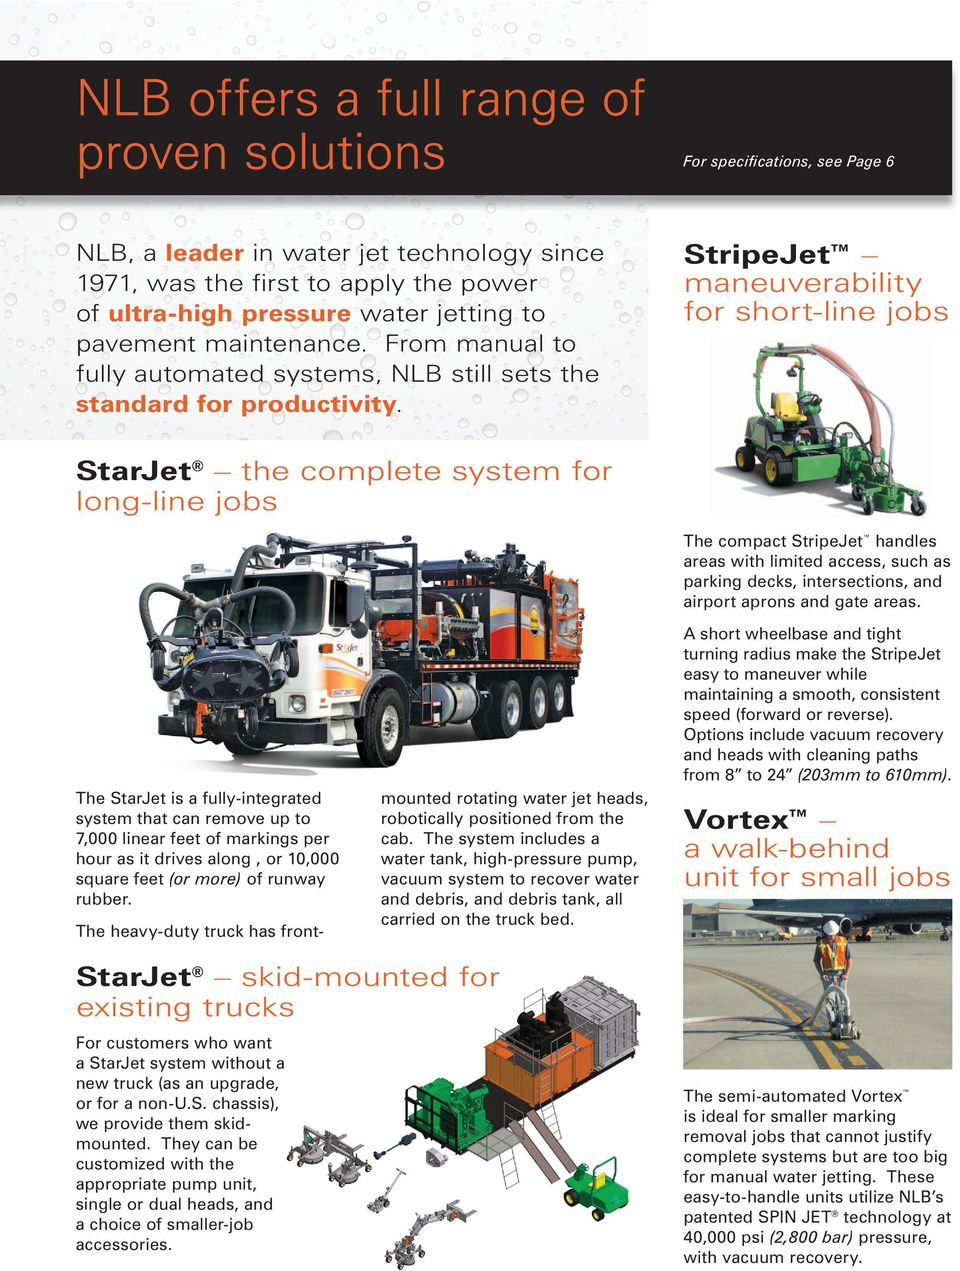 Water Jet Solutions for Removing Pavement Marking and Runway